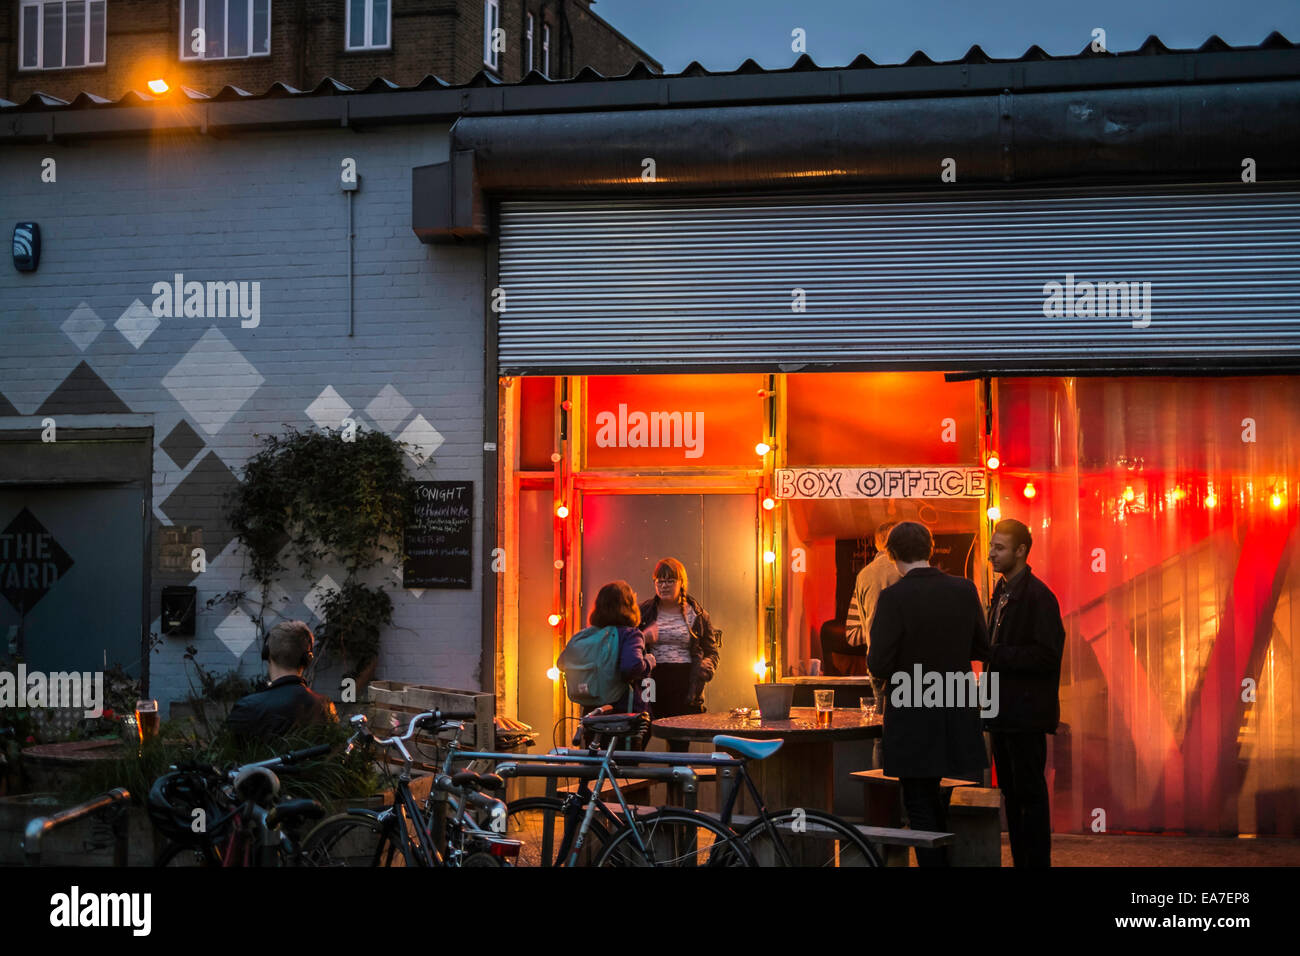 The Yard Theatre, Hackney Wick, E9, London, United Kingdom - Stock Image